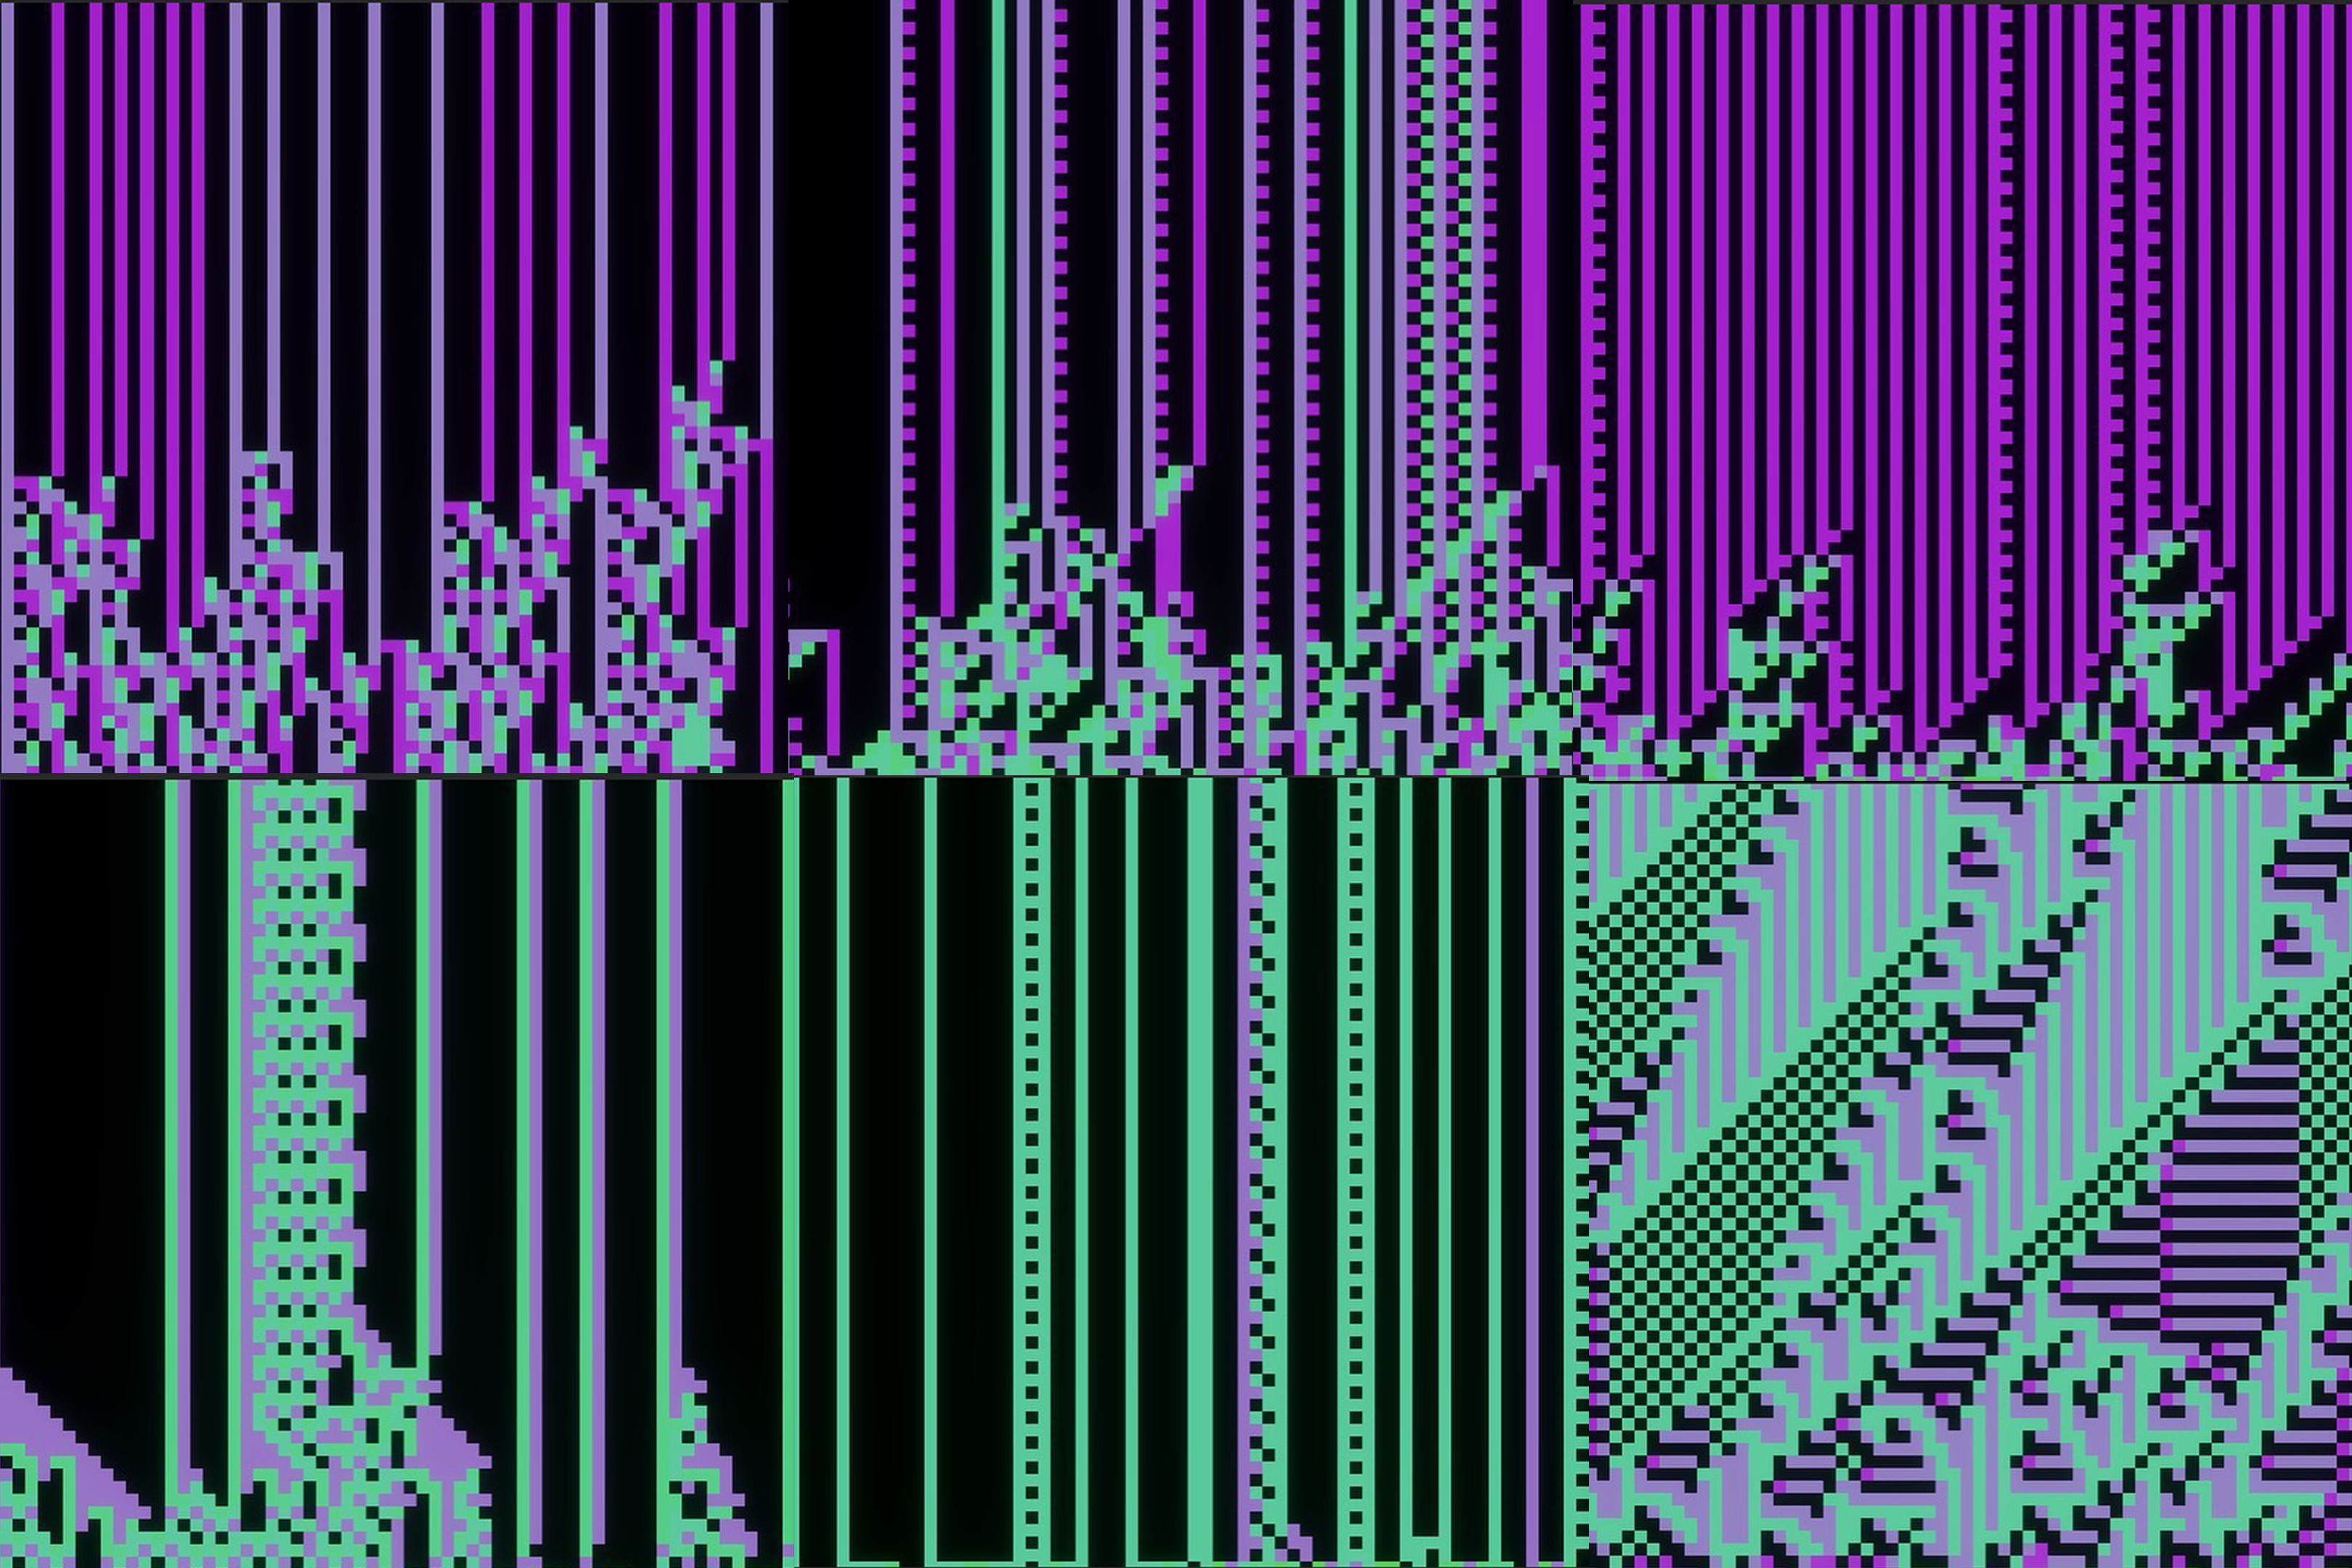 2D Chaos generated structures